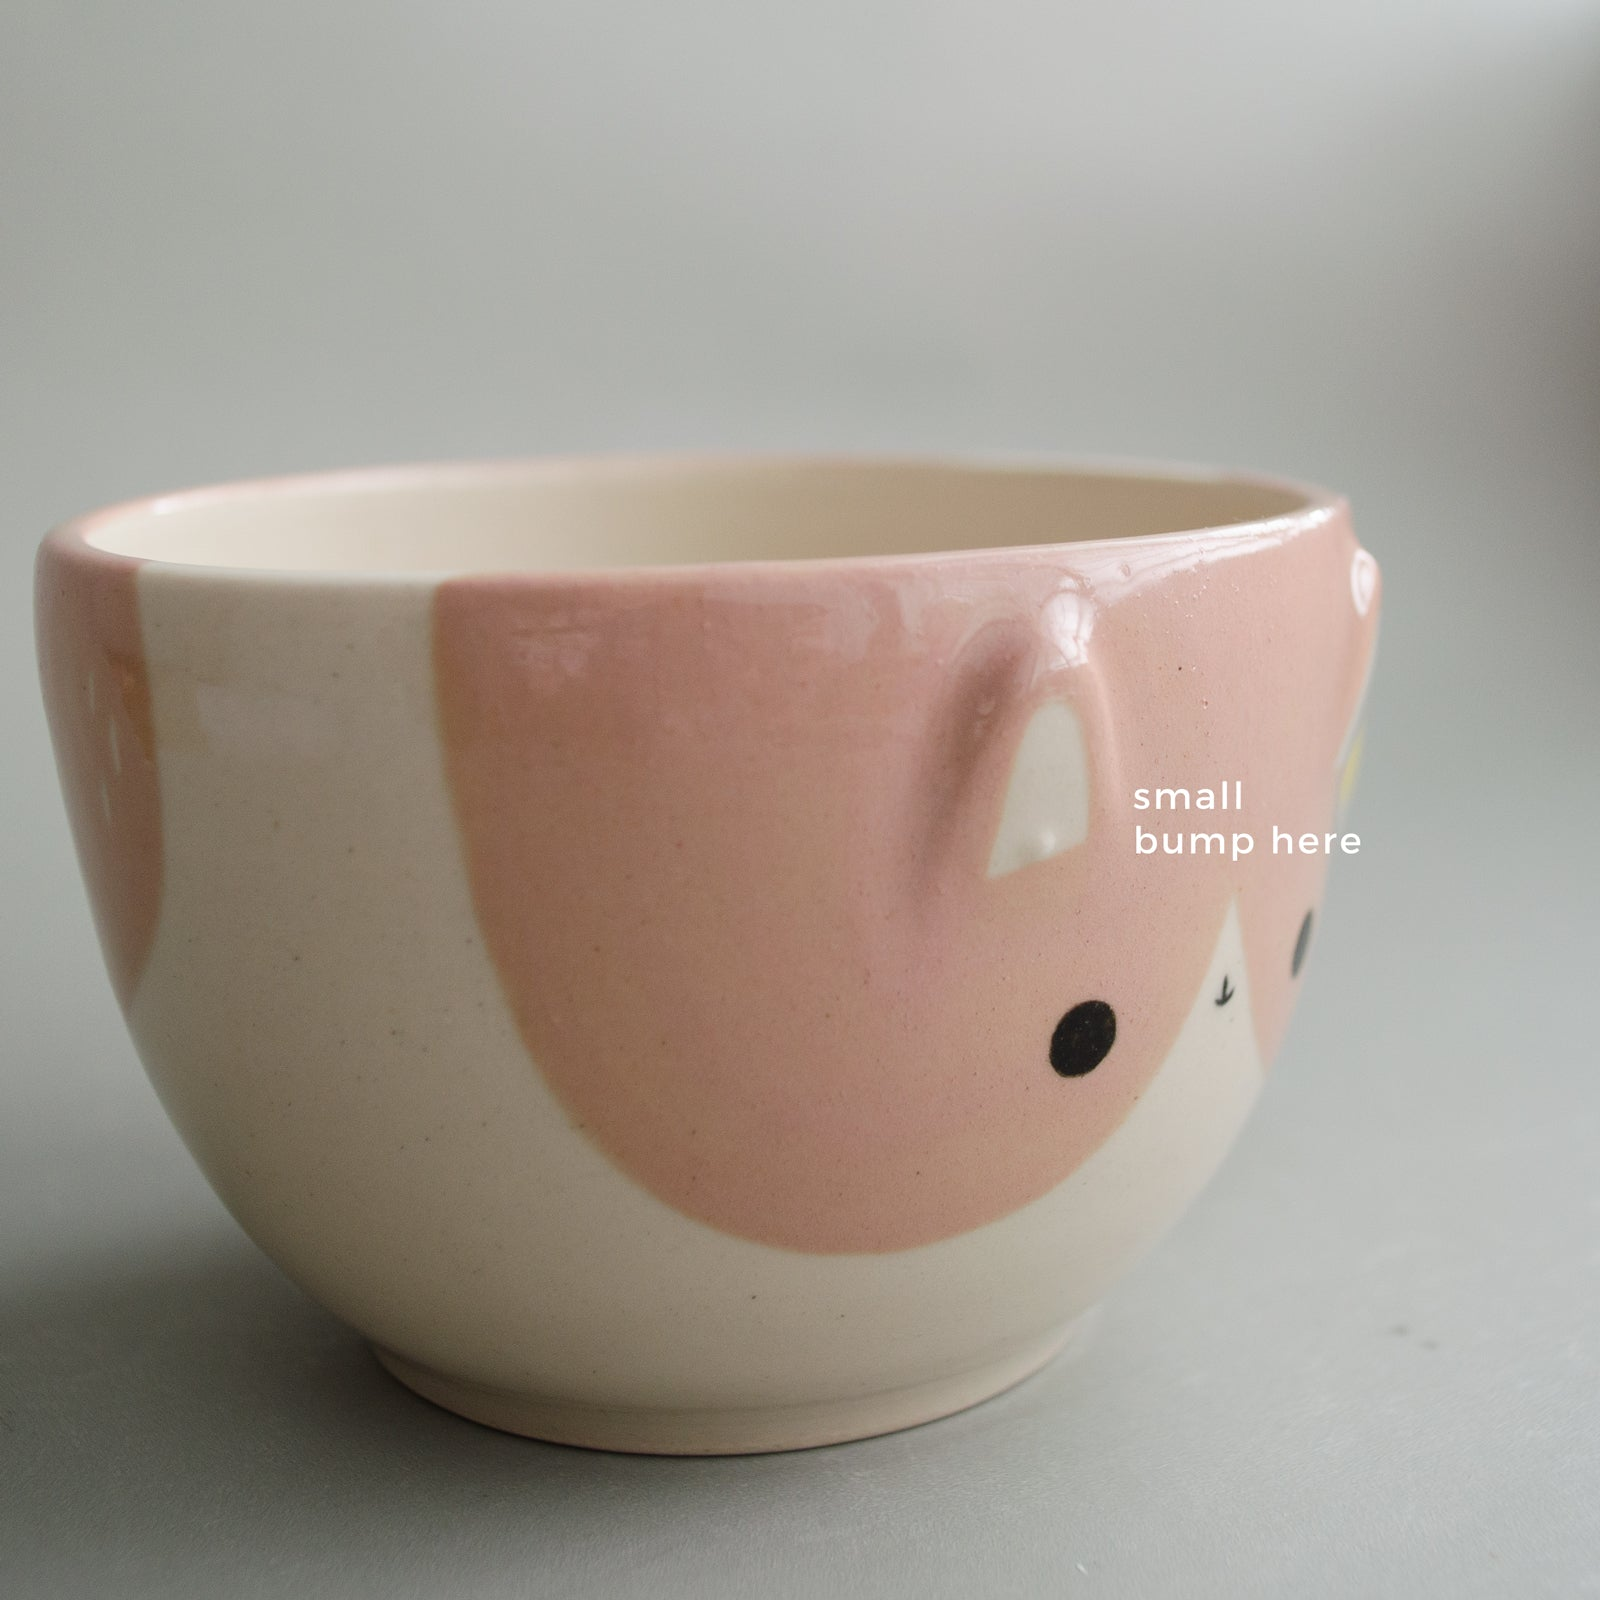 [Second] Taffy Bunny Mug